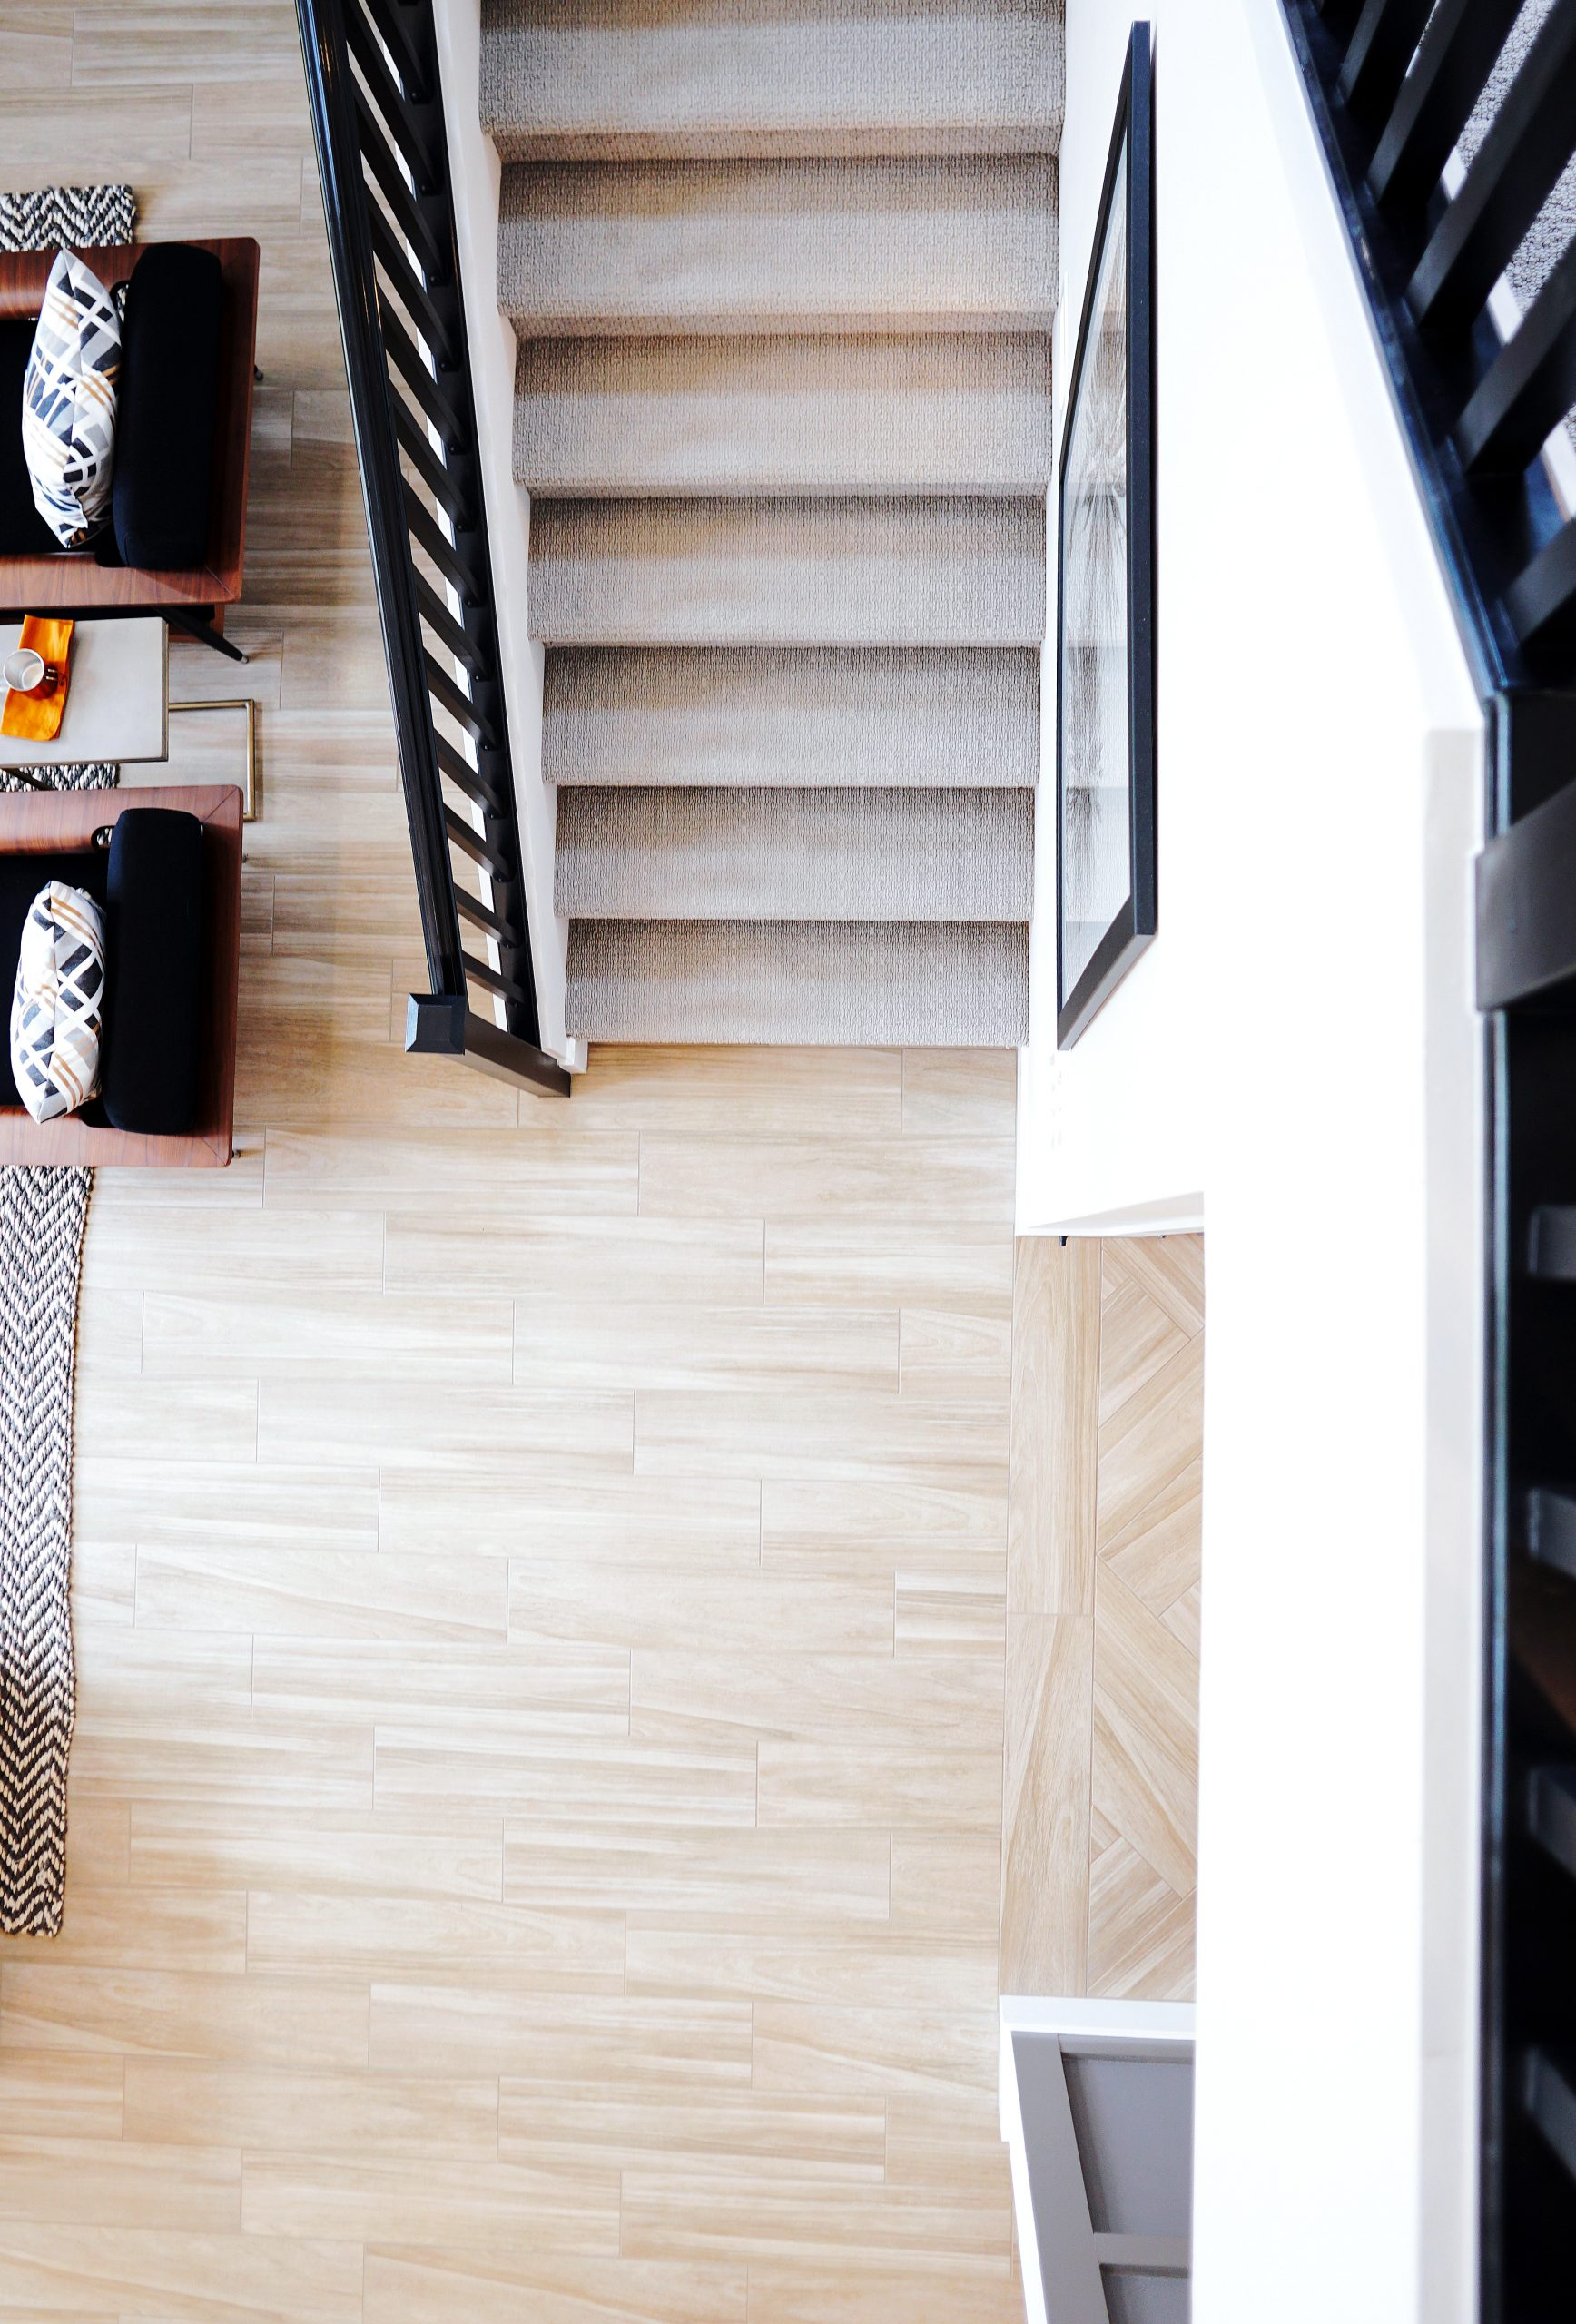 6 Eco Friendly Ideas To Renovate Your Home